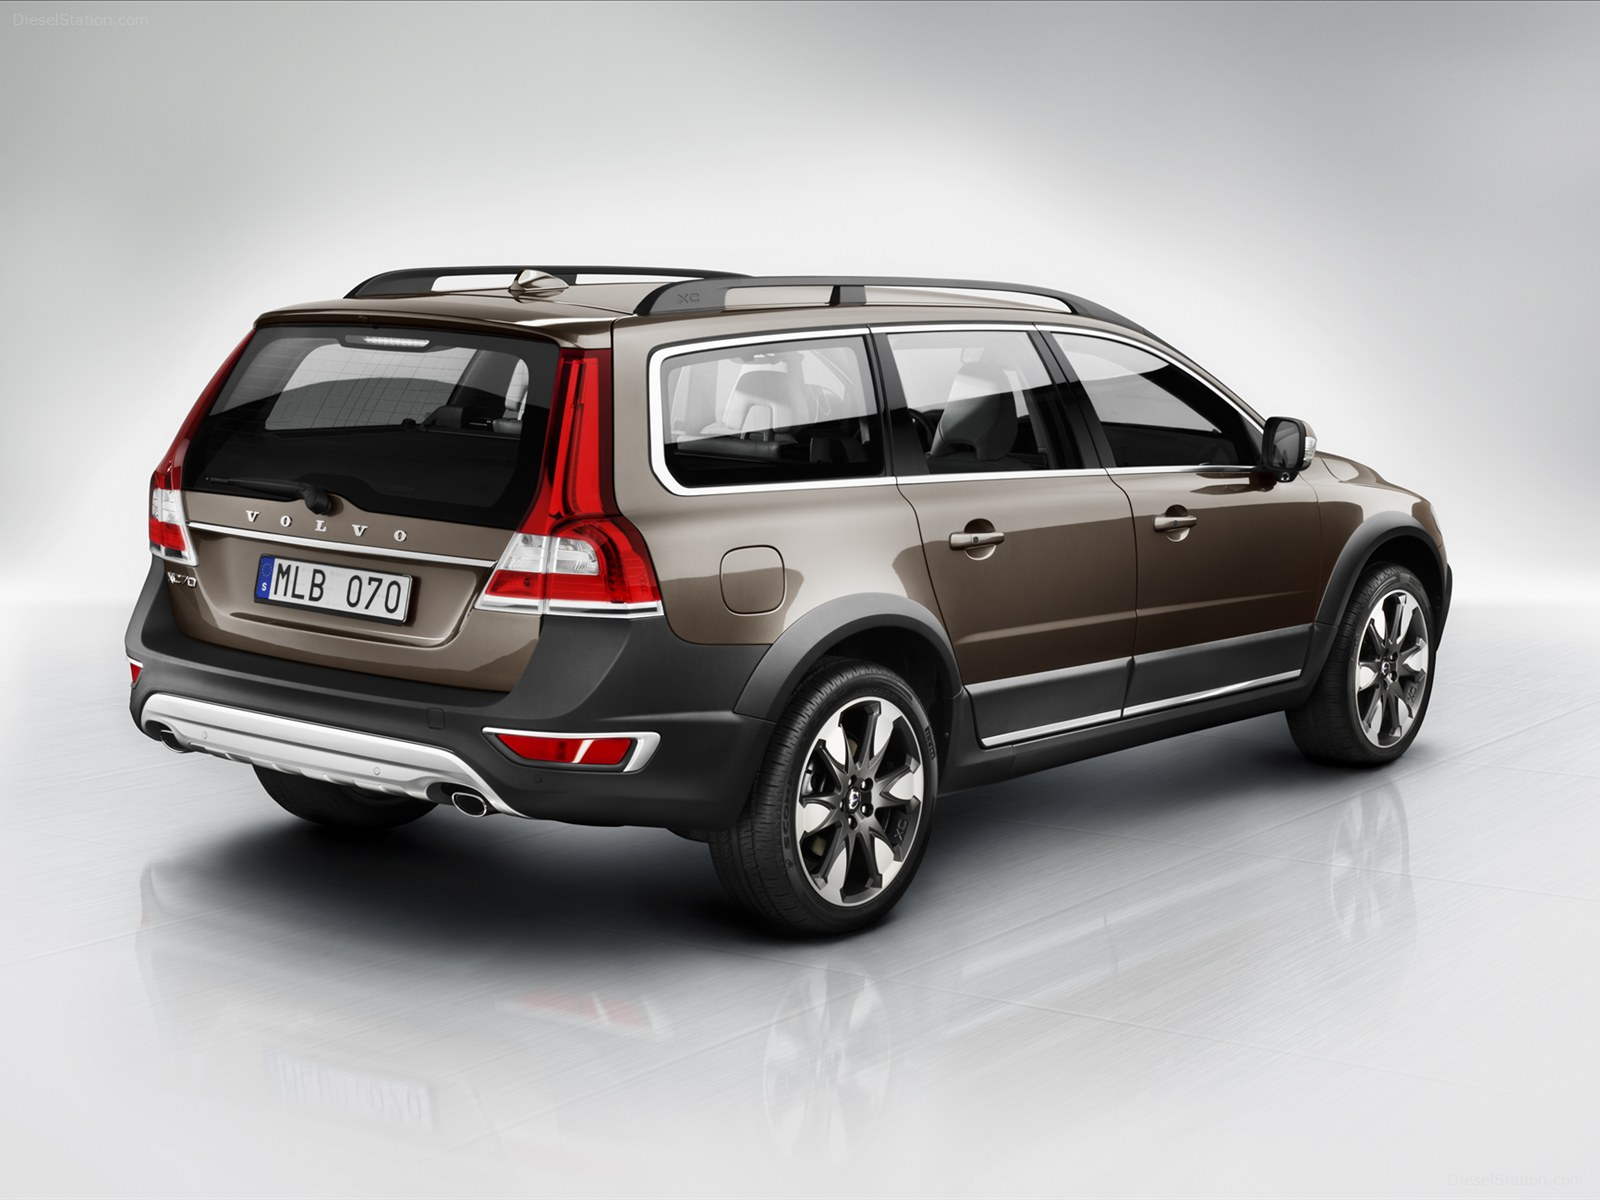 Volvo XC70 2014 Exotic Car Wallpapers 02 of 12 Diesel Station 1600x1200